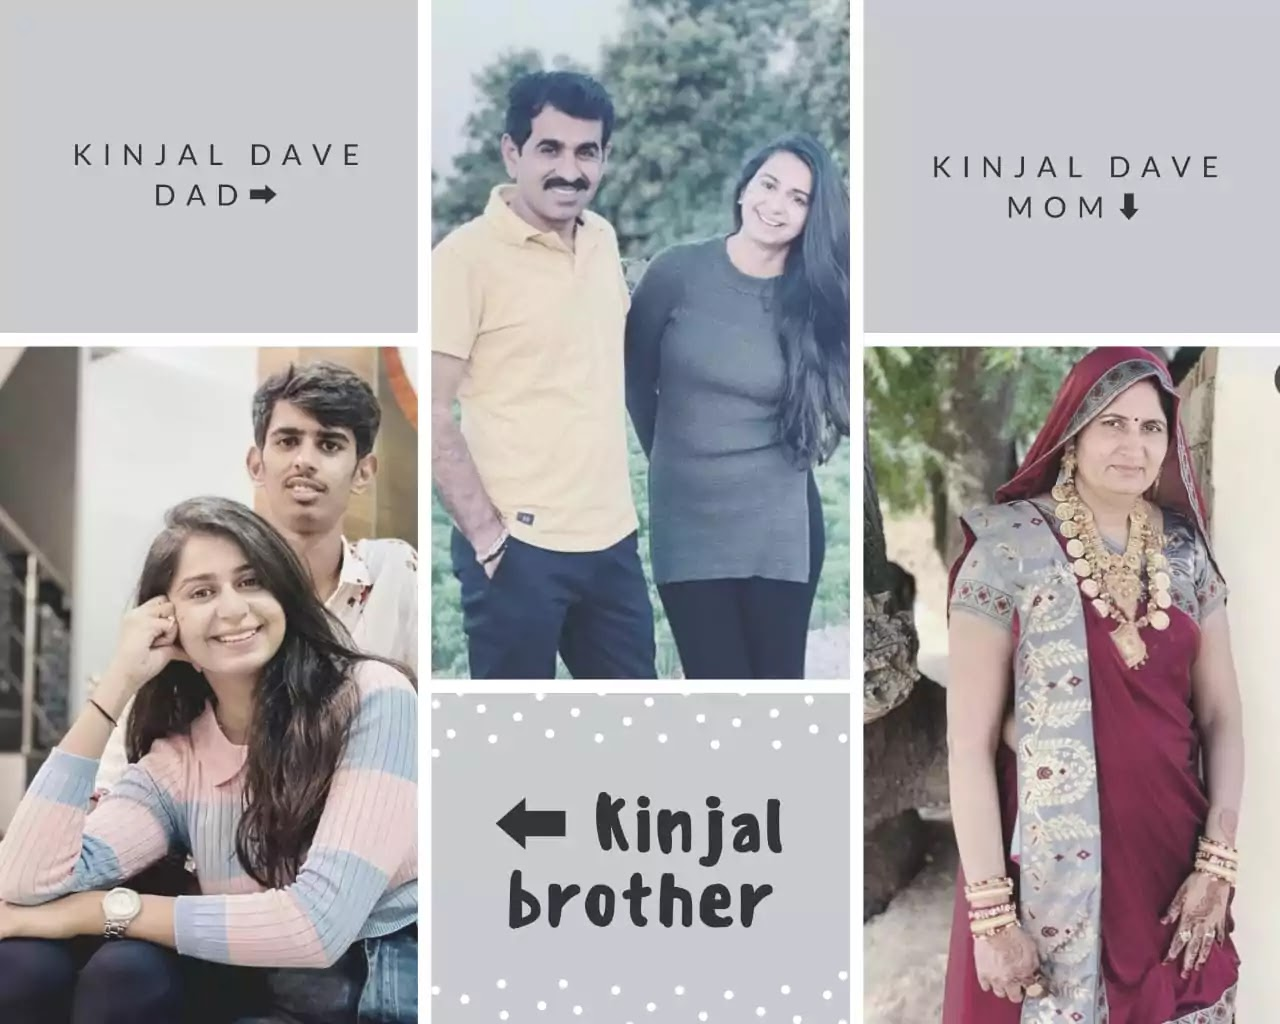 kinjal Dave Biography in English